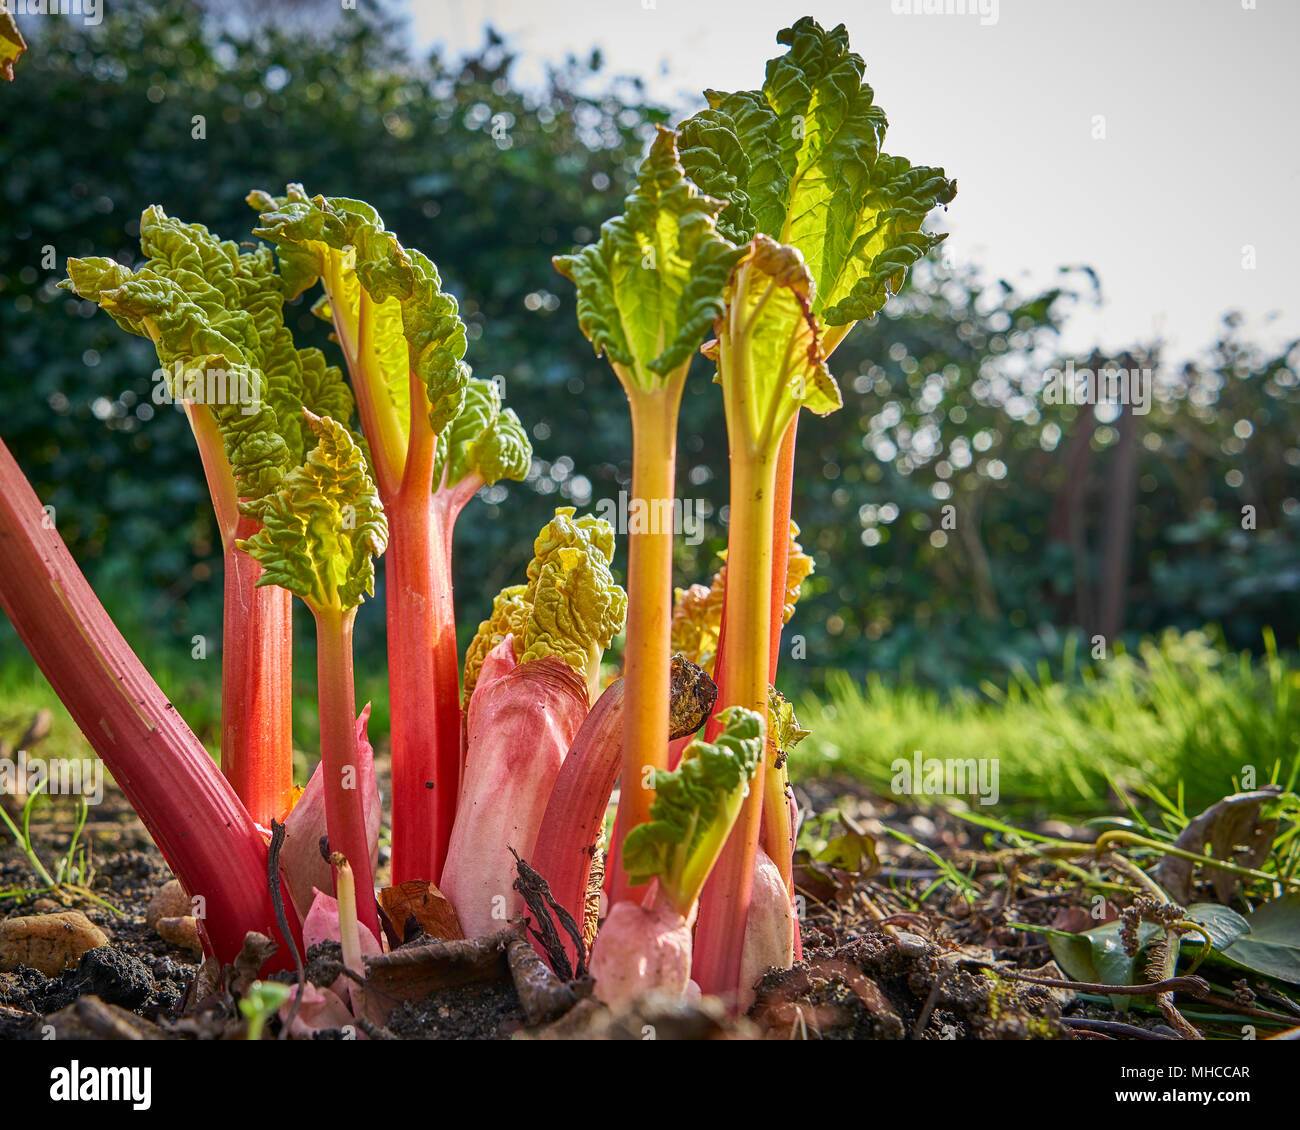 New rhubarb shoots sprouting in a garden in spring Stock Photo